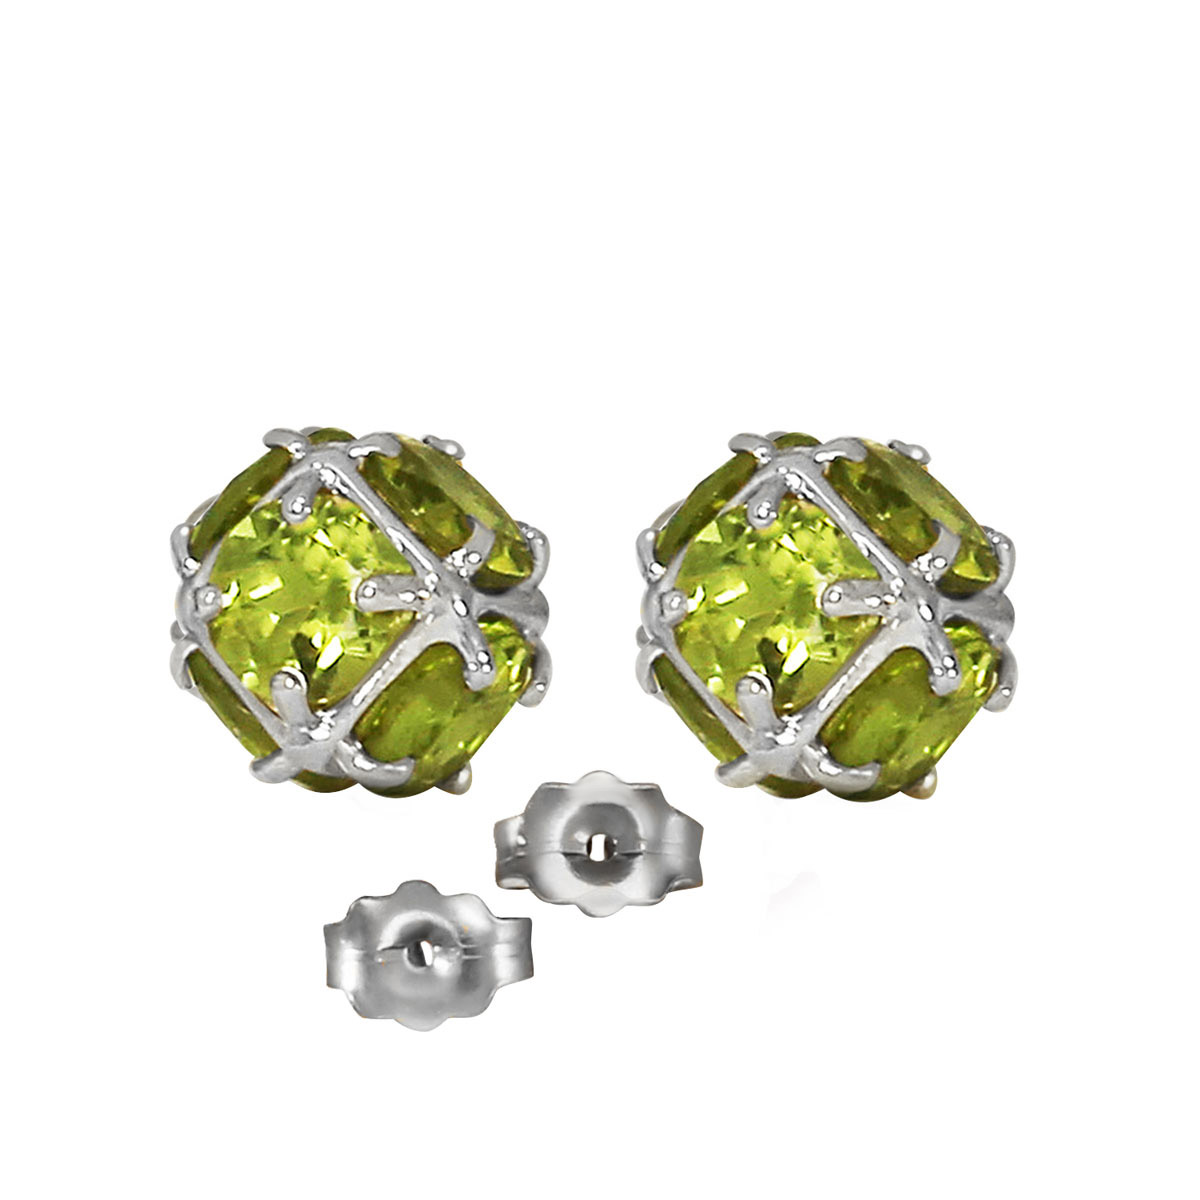 with prosperity xmoonstone pagespeed increase and happiness peridot stone earrings gemstones maflx ic rainbow moonstone